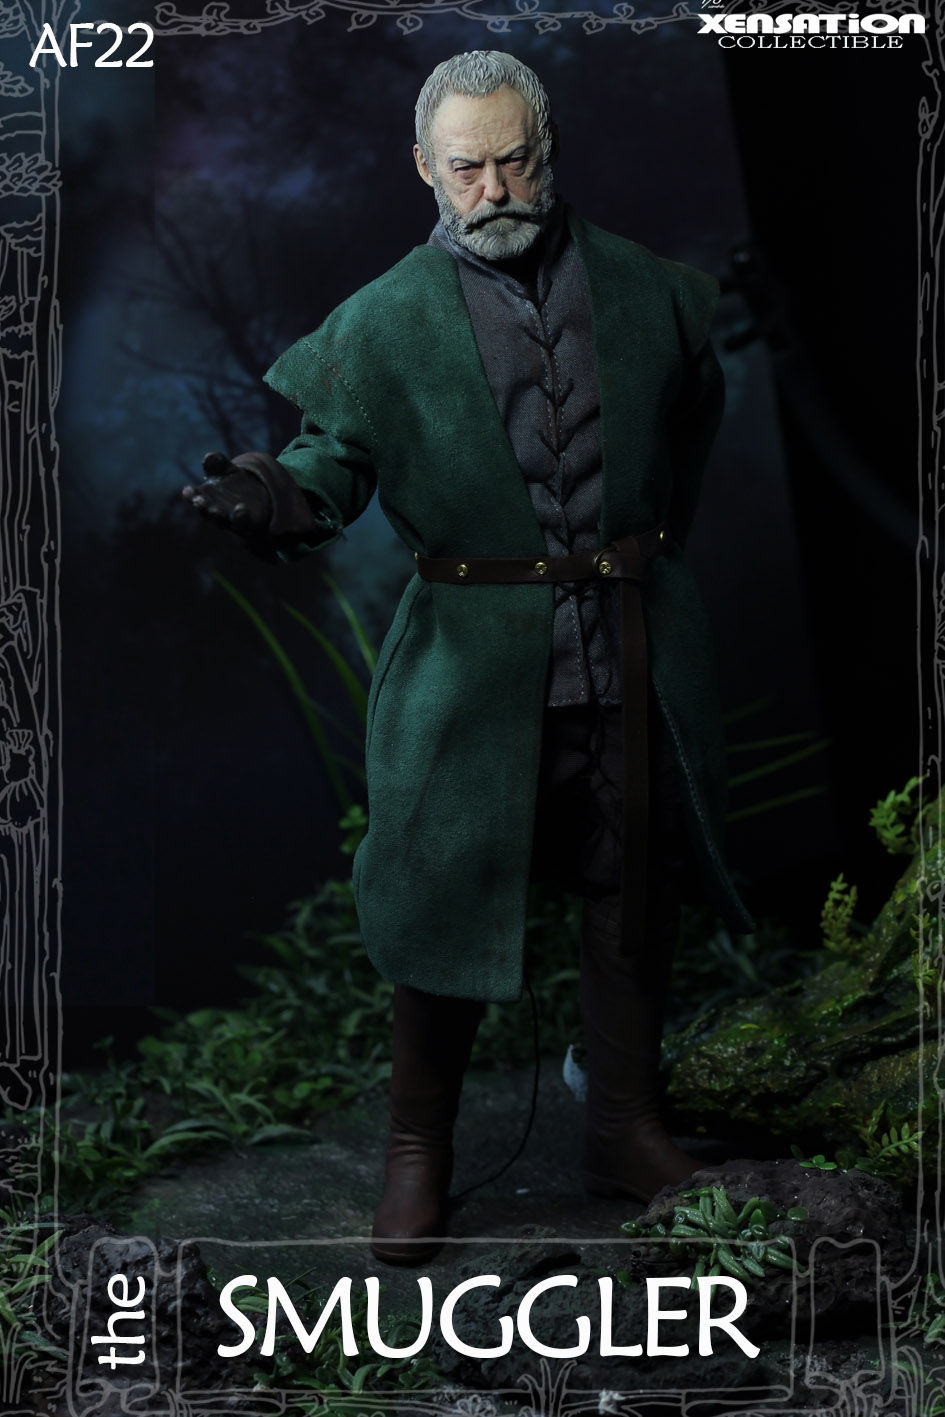 male - NEW PRODUCT: Xensation: 1/6 The Smuggler action figure AF23# 18000010